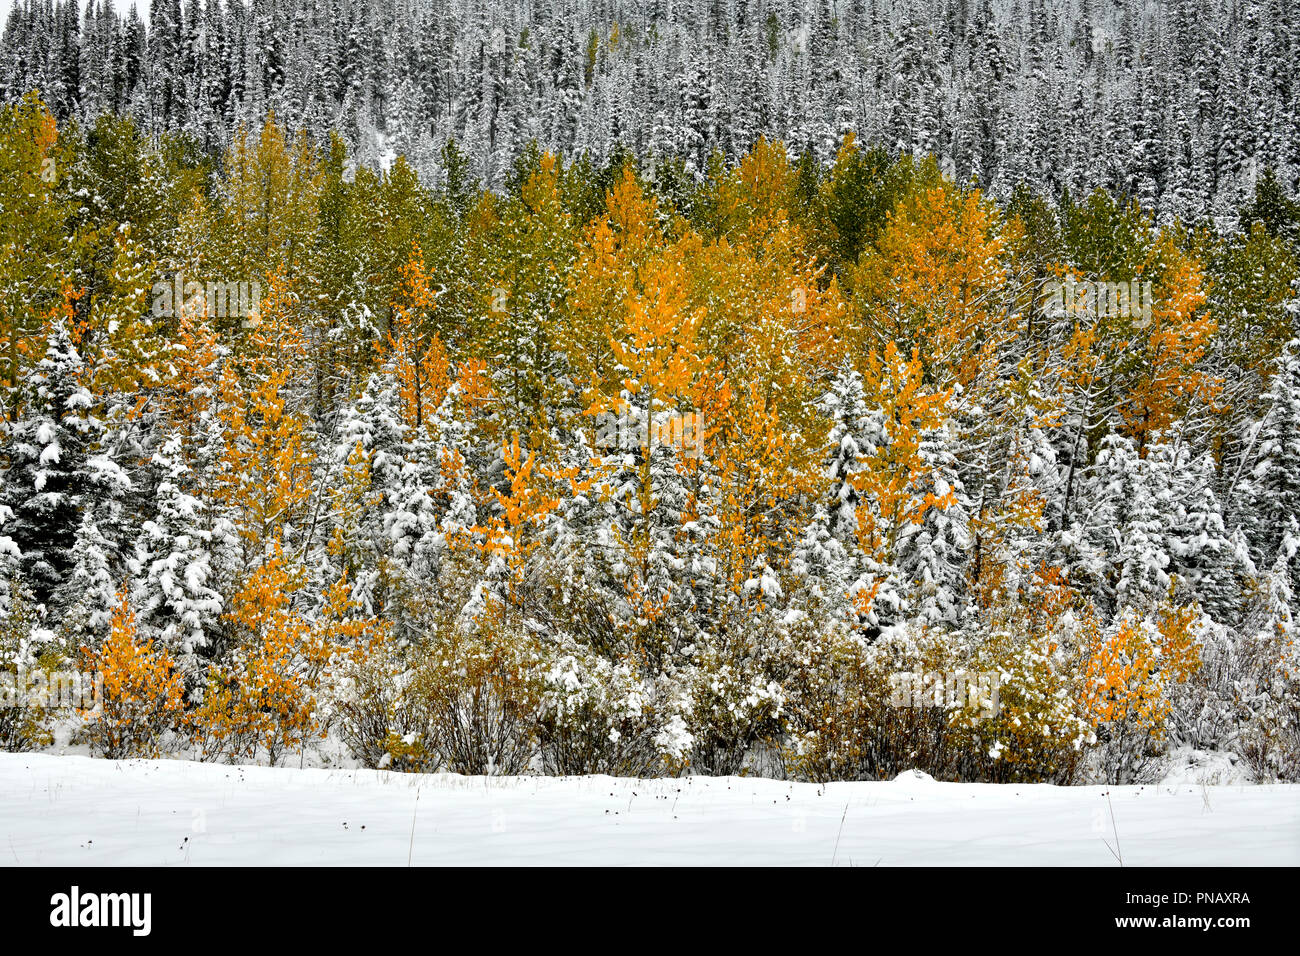 A nature landscape image of colorful vegetation with an early autumn snow in rural Alberta Canada. - Stock Image